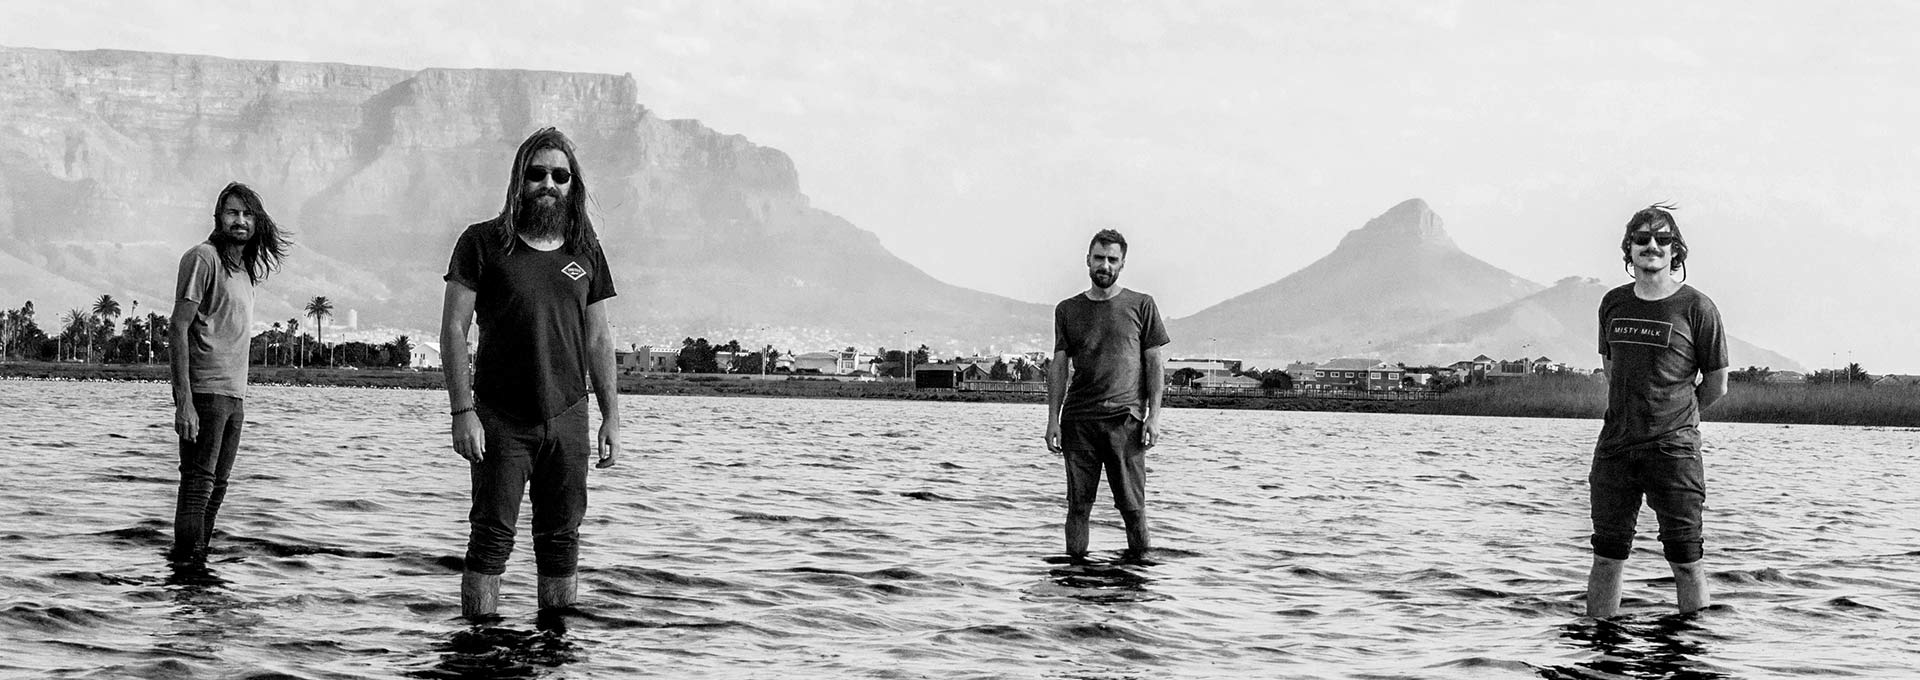 South African Band Scarlotte Will in Cape Town